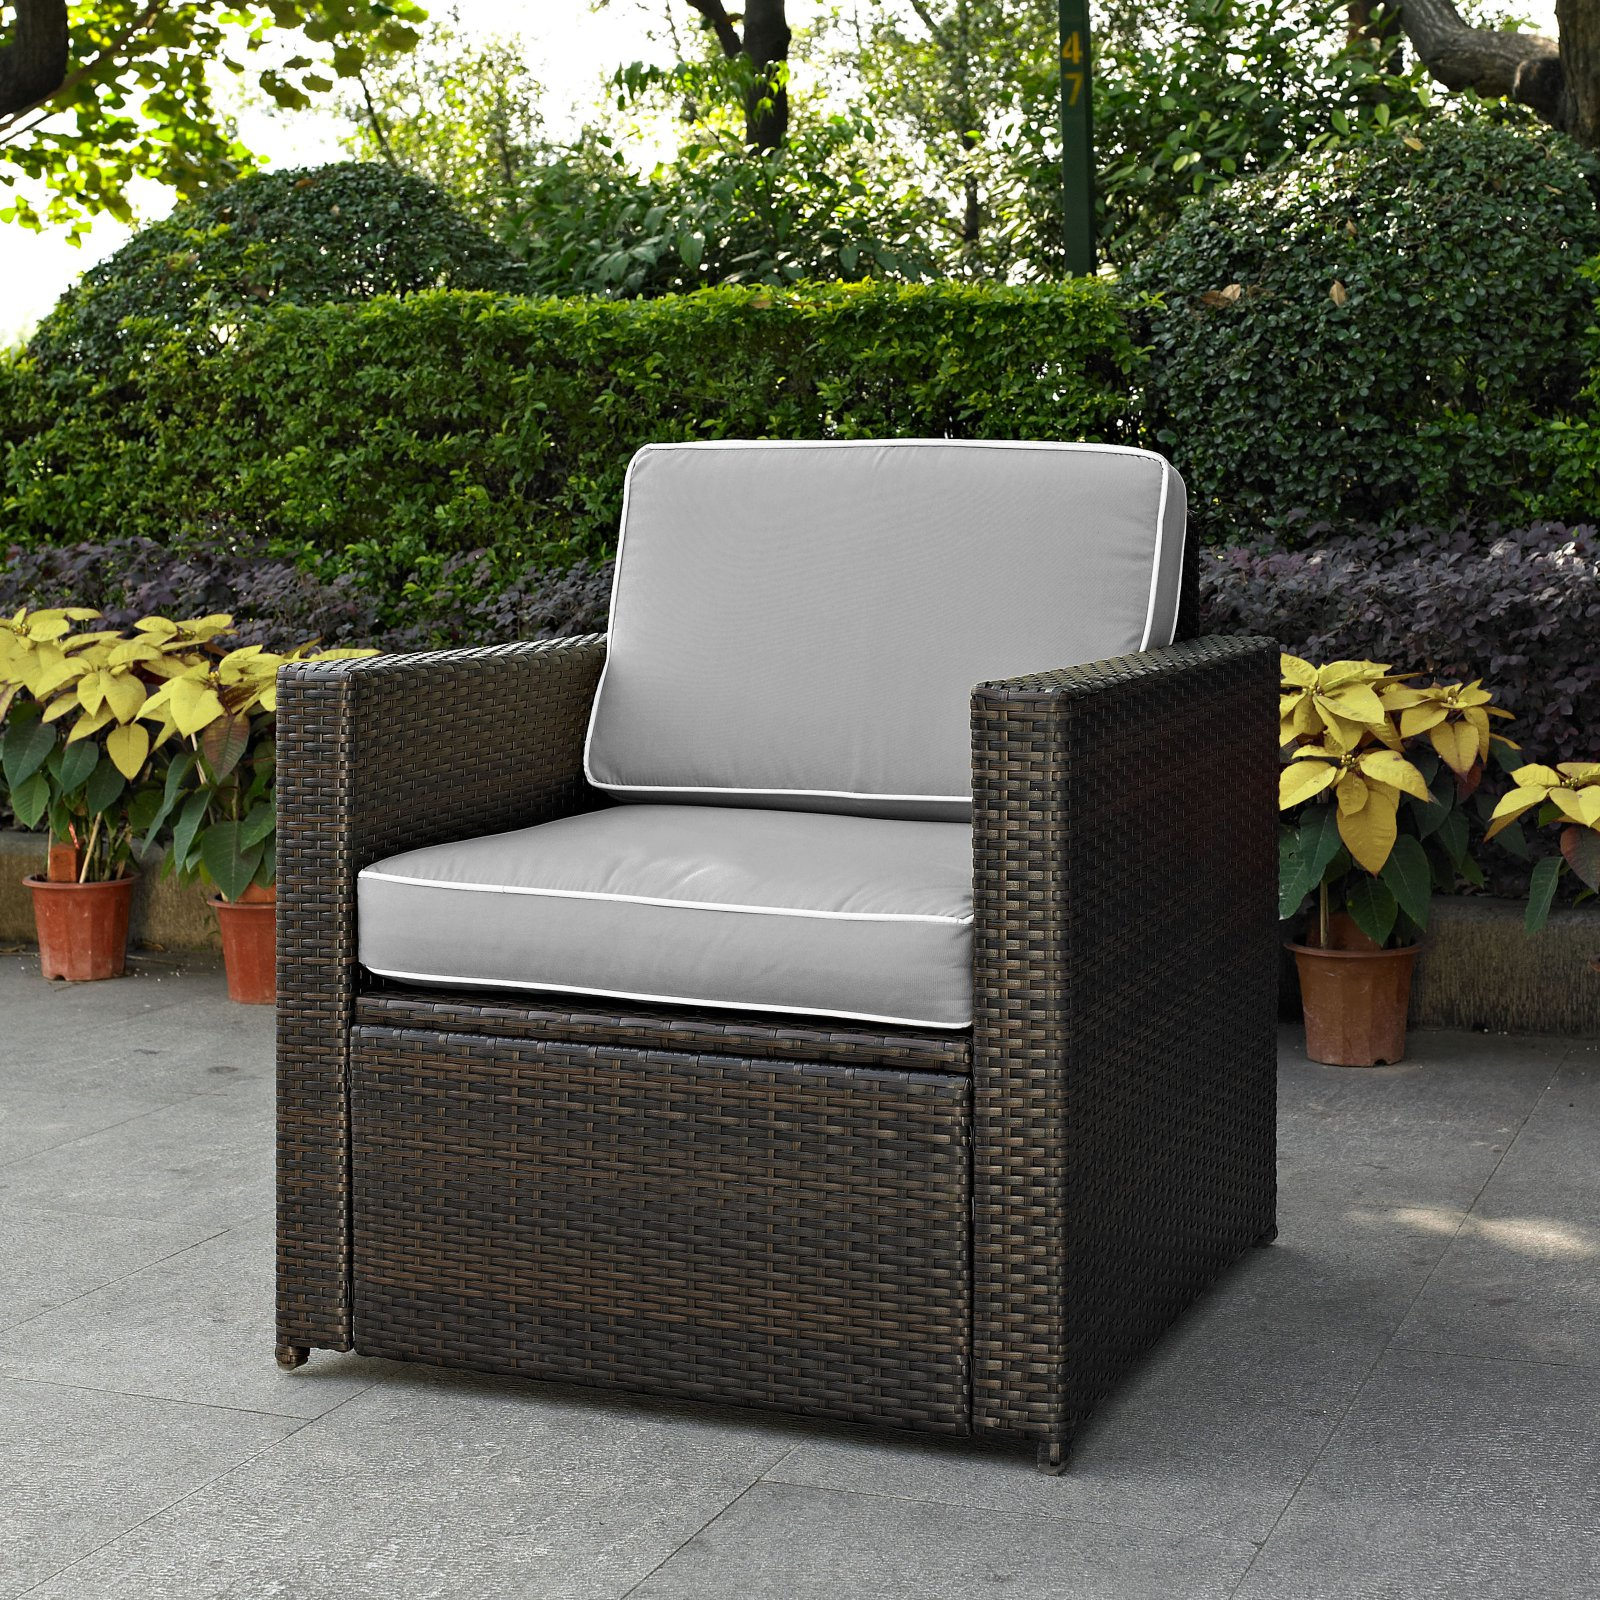 Crosley Furniture Ko70088br Gy Palm Harbor Resin Wicker Outdoor Arm Chair Brown Grey